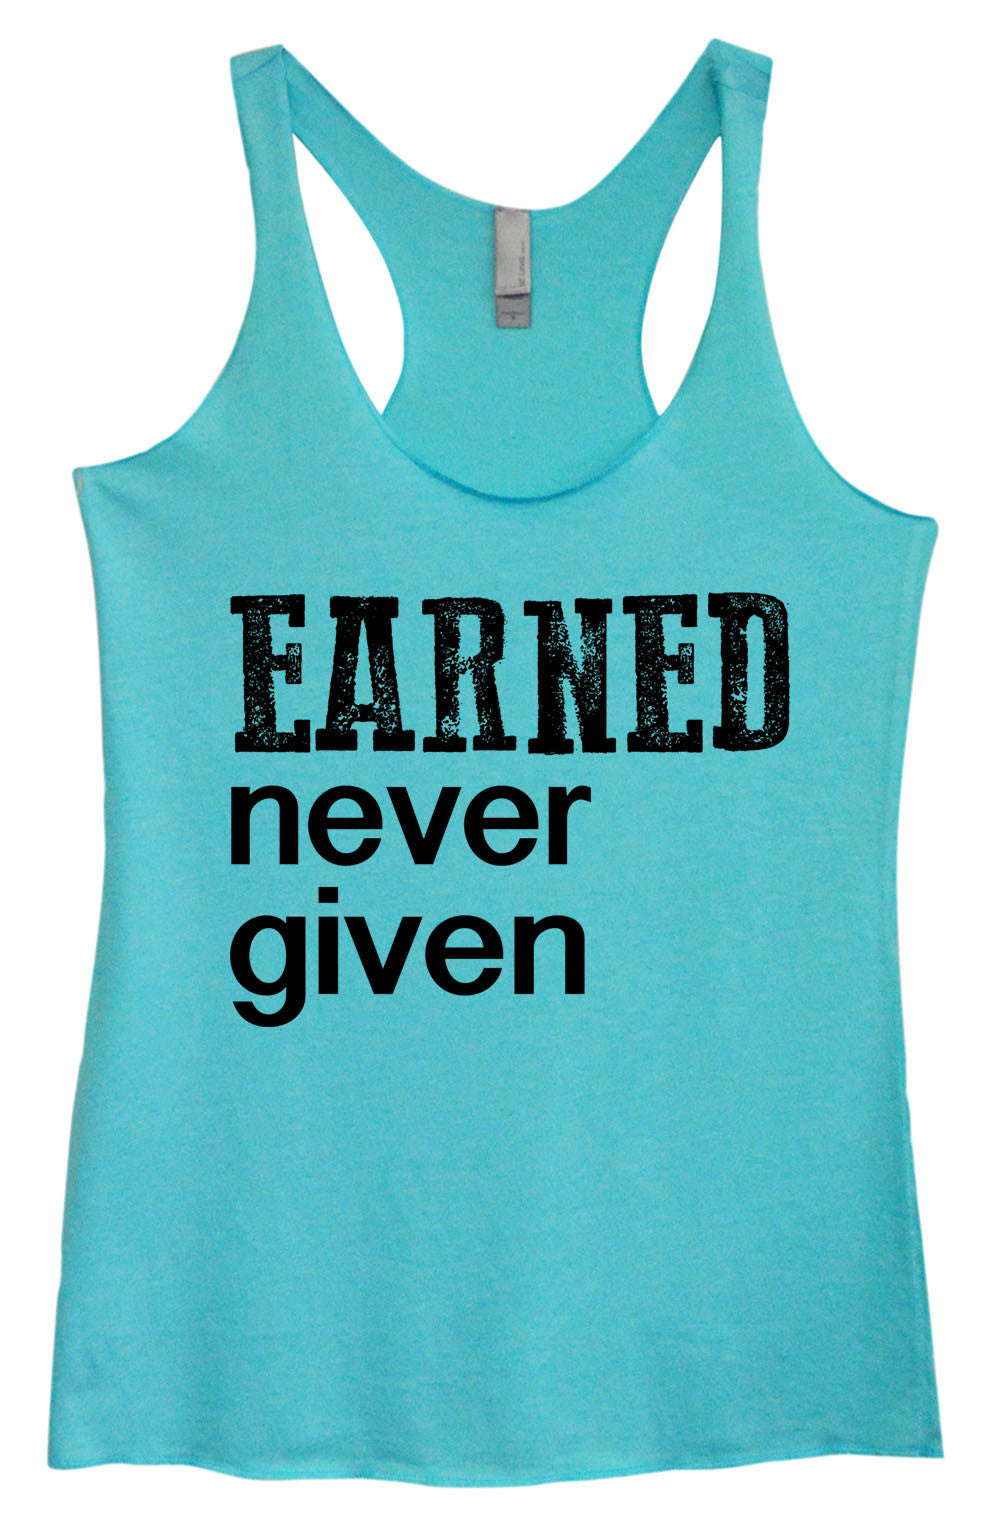 Womens Fashion Triblend Tank Top - Earned Never Given - Tri-766 - Funny Shirts Tank Tops Burnouts and Triblends  - 4